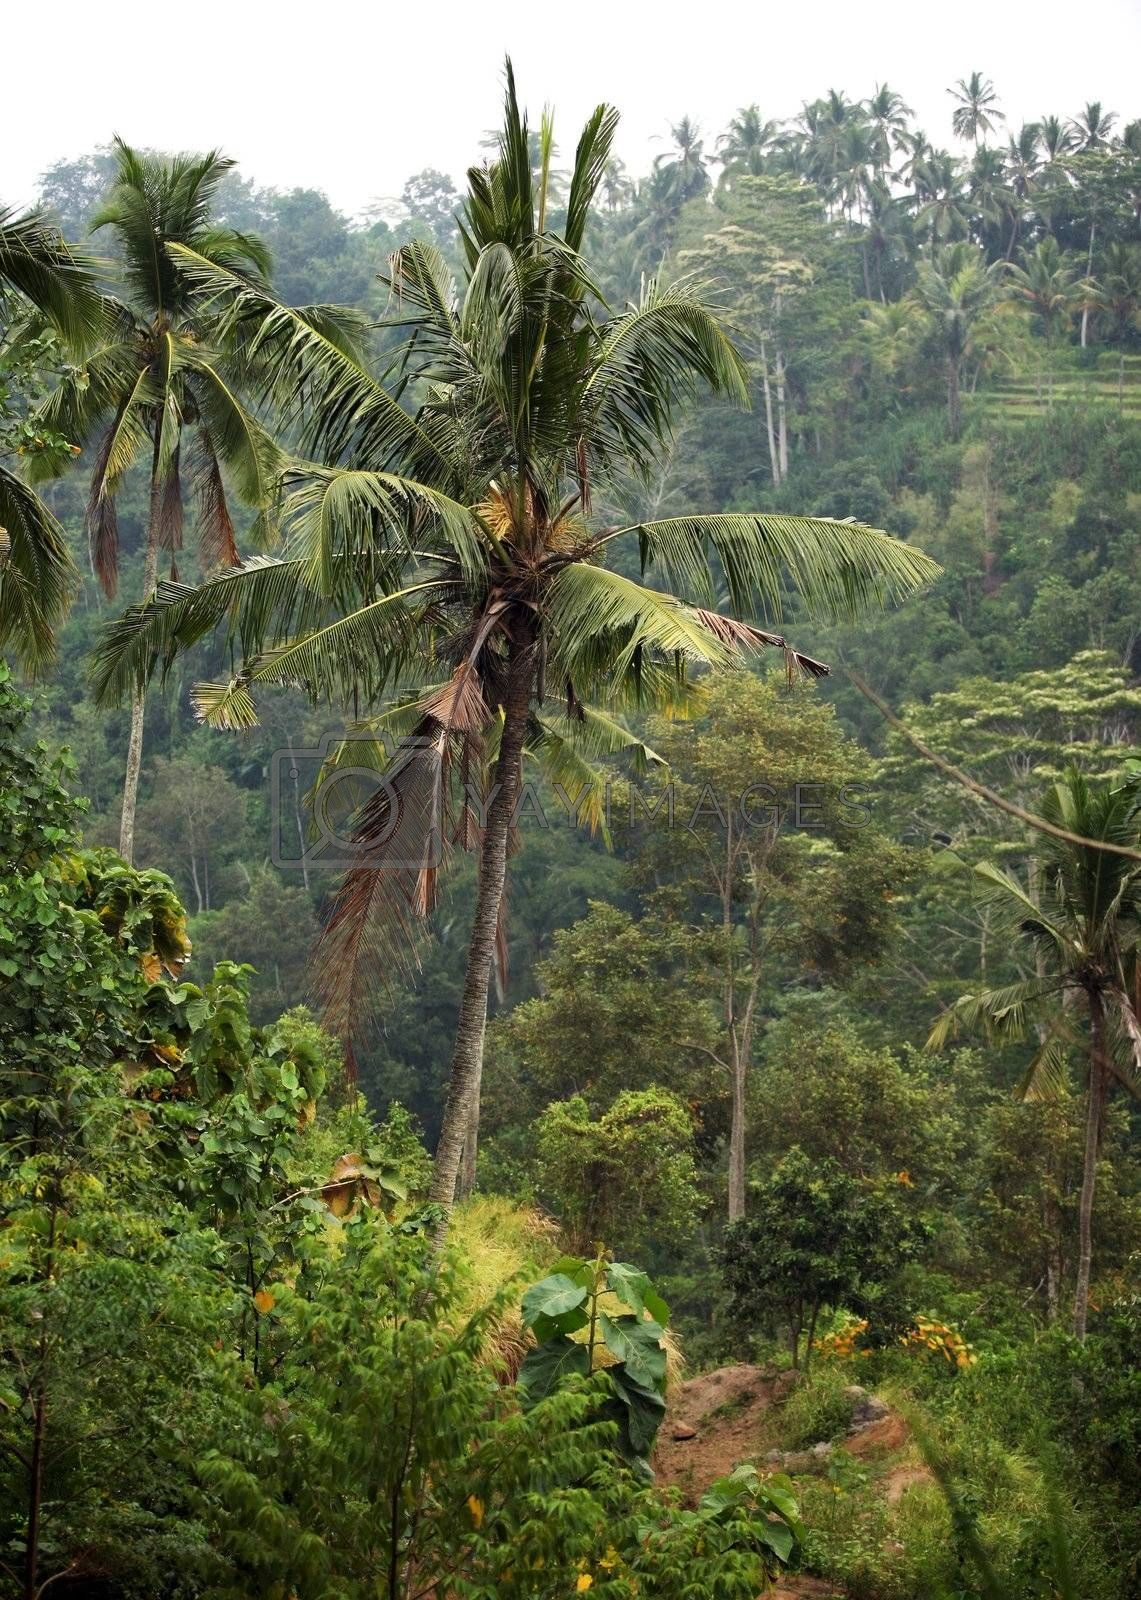 Trees of a coco in jungle. Bali. Indonesia